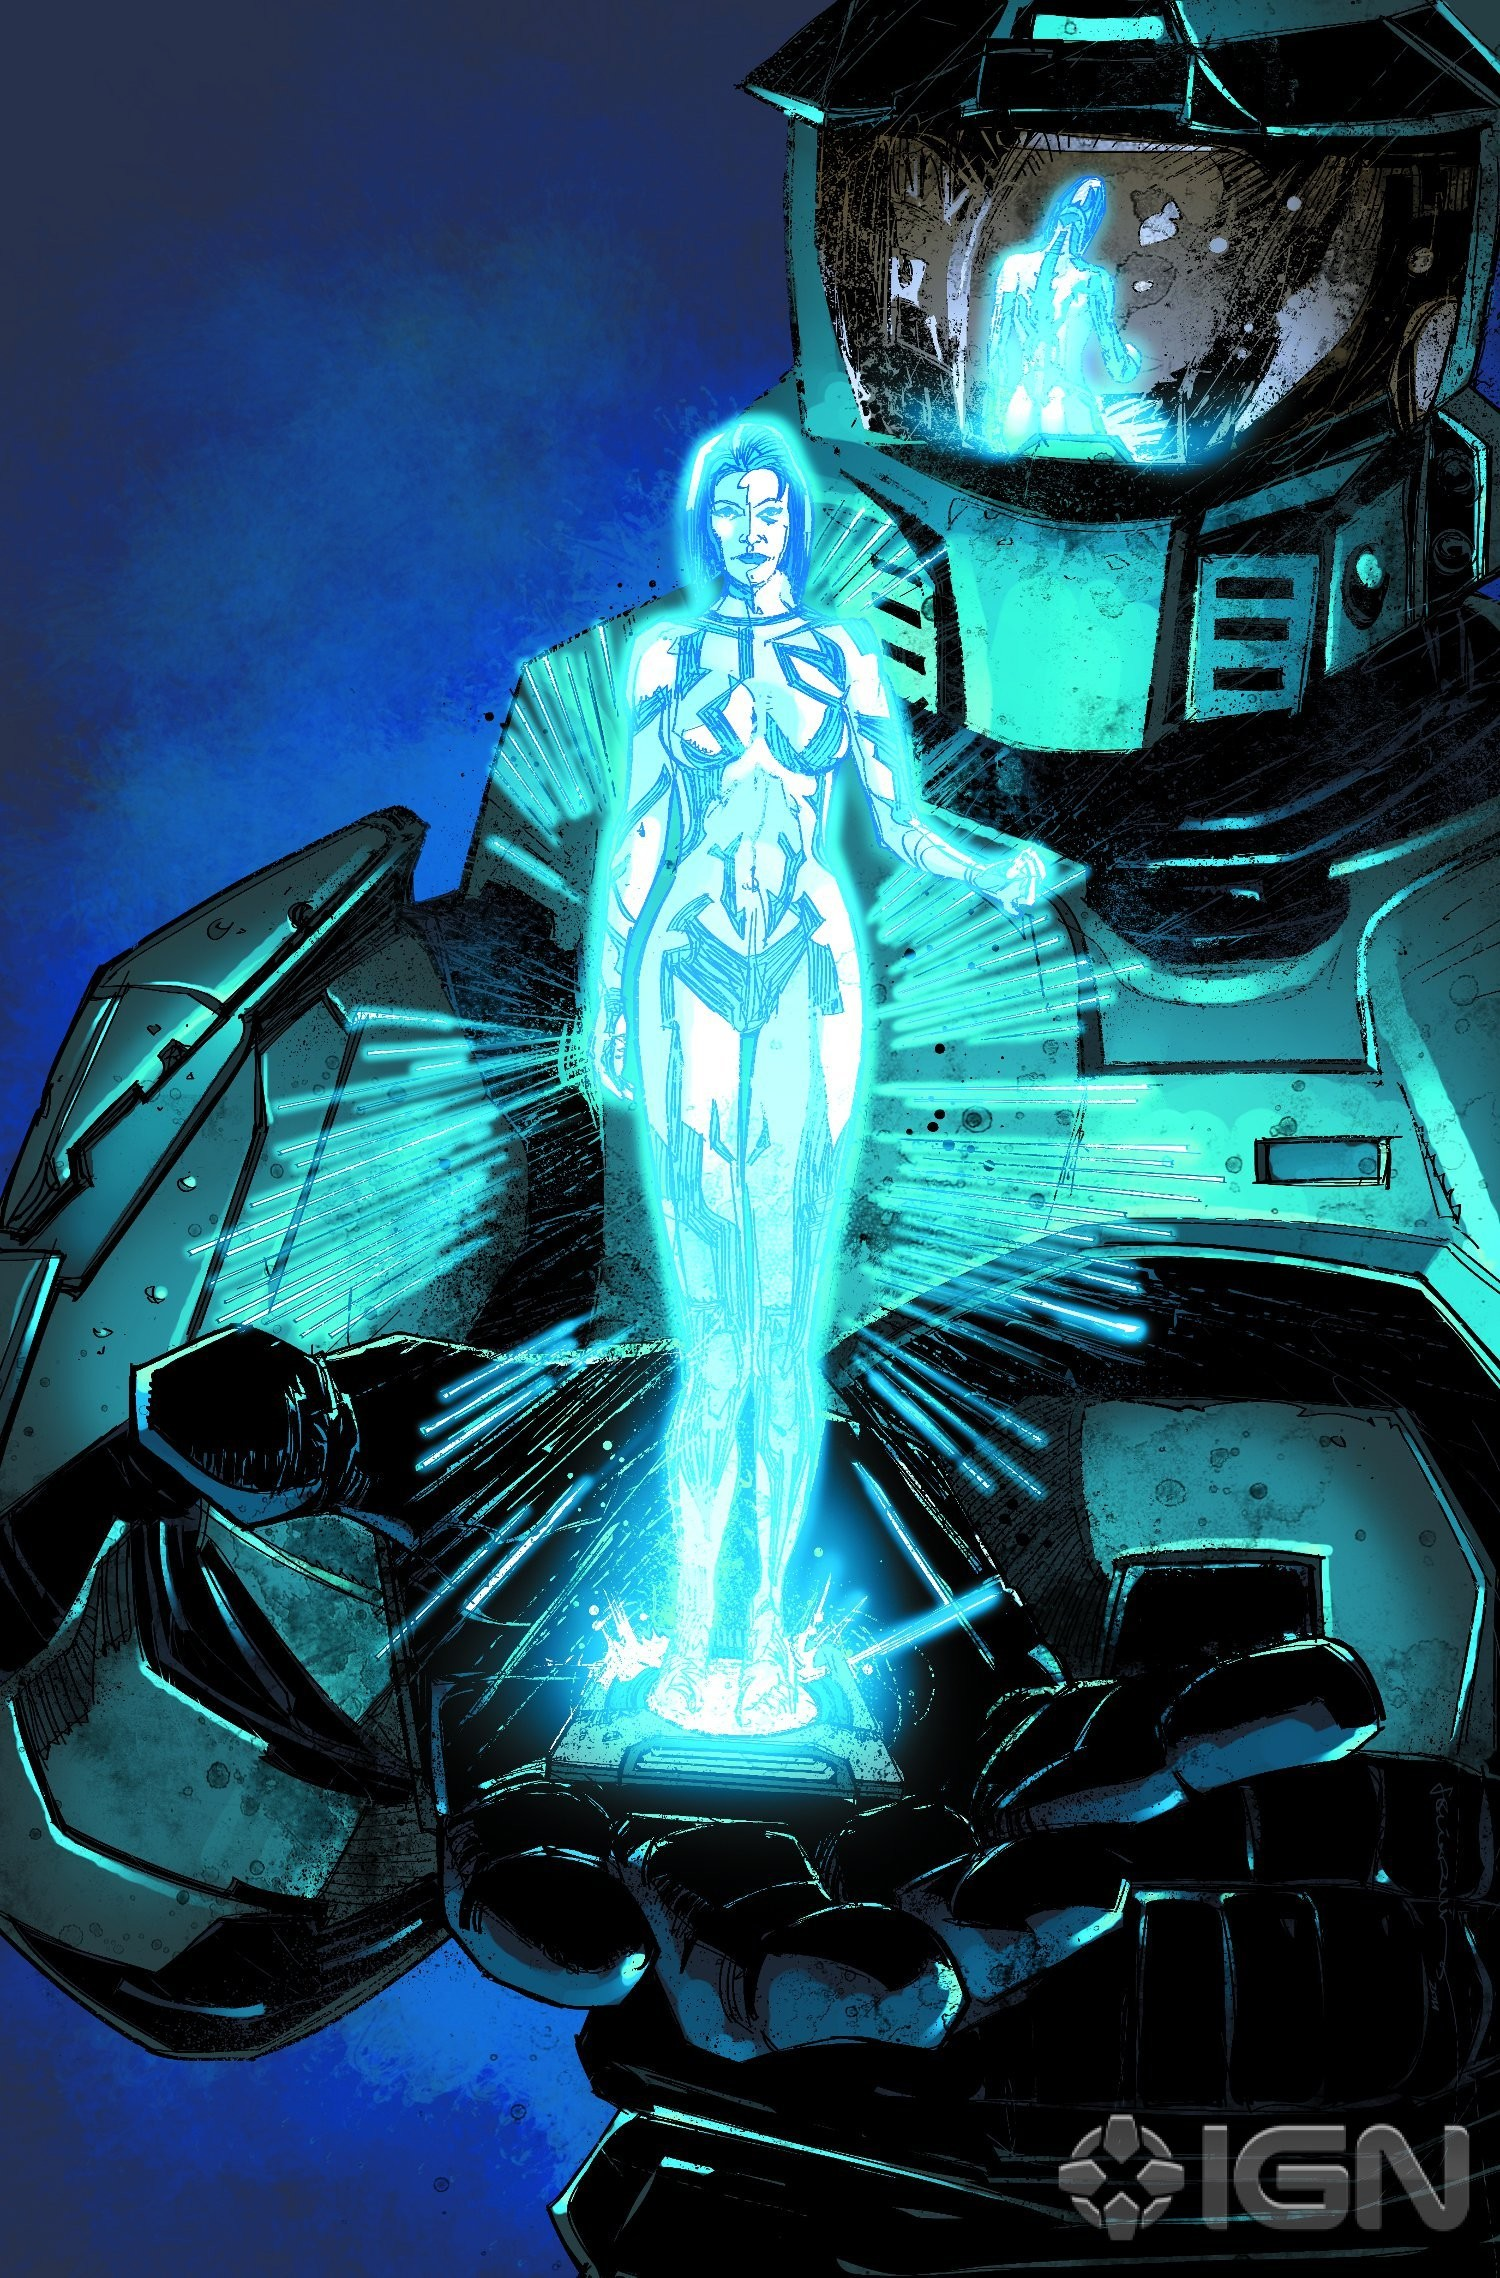 I also have the cover of the Invasion comic as my lockscreen. It's so  fudging cool when my phone does that light glimmer which makes it look like  Cortana is …